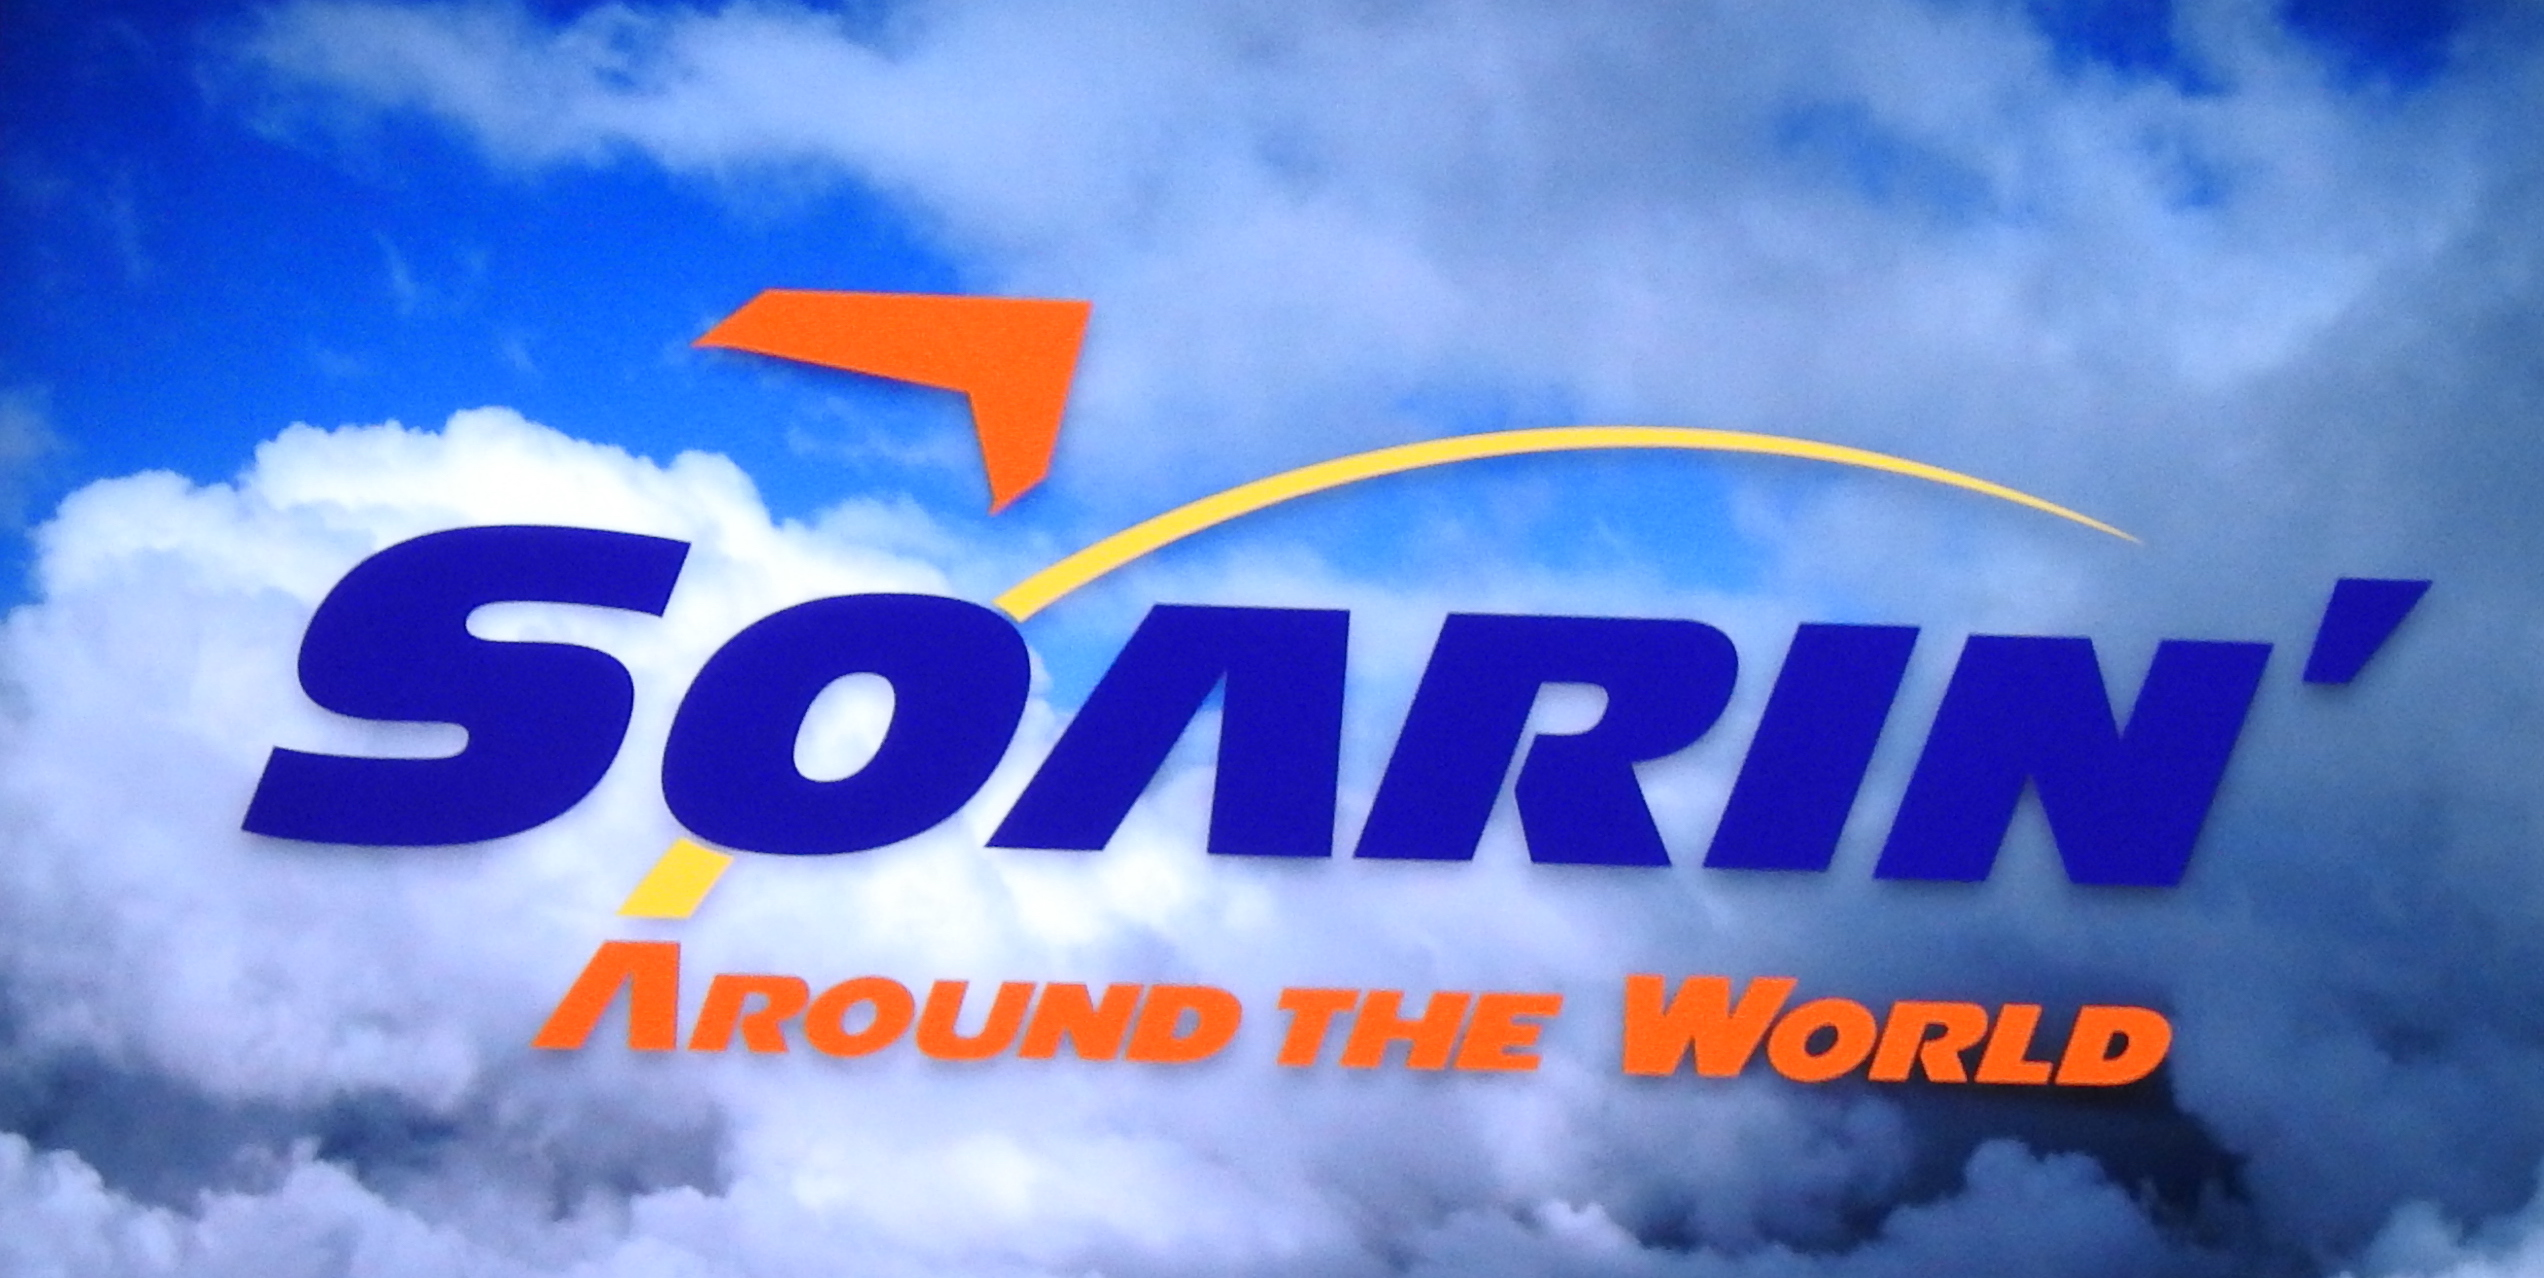 In Soaring, you are seated in a row of about 8 seats. When the video begins, you are lifted up and feel like you are part of the action. You visit some of the most famous places on earth.